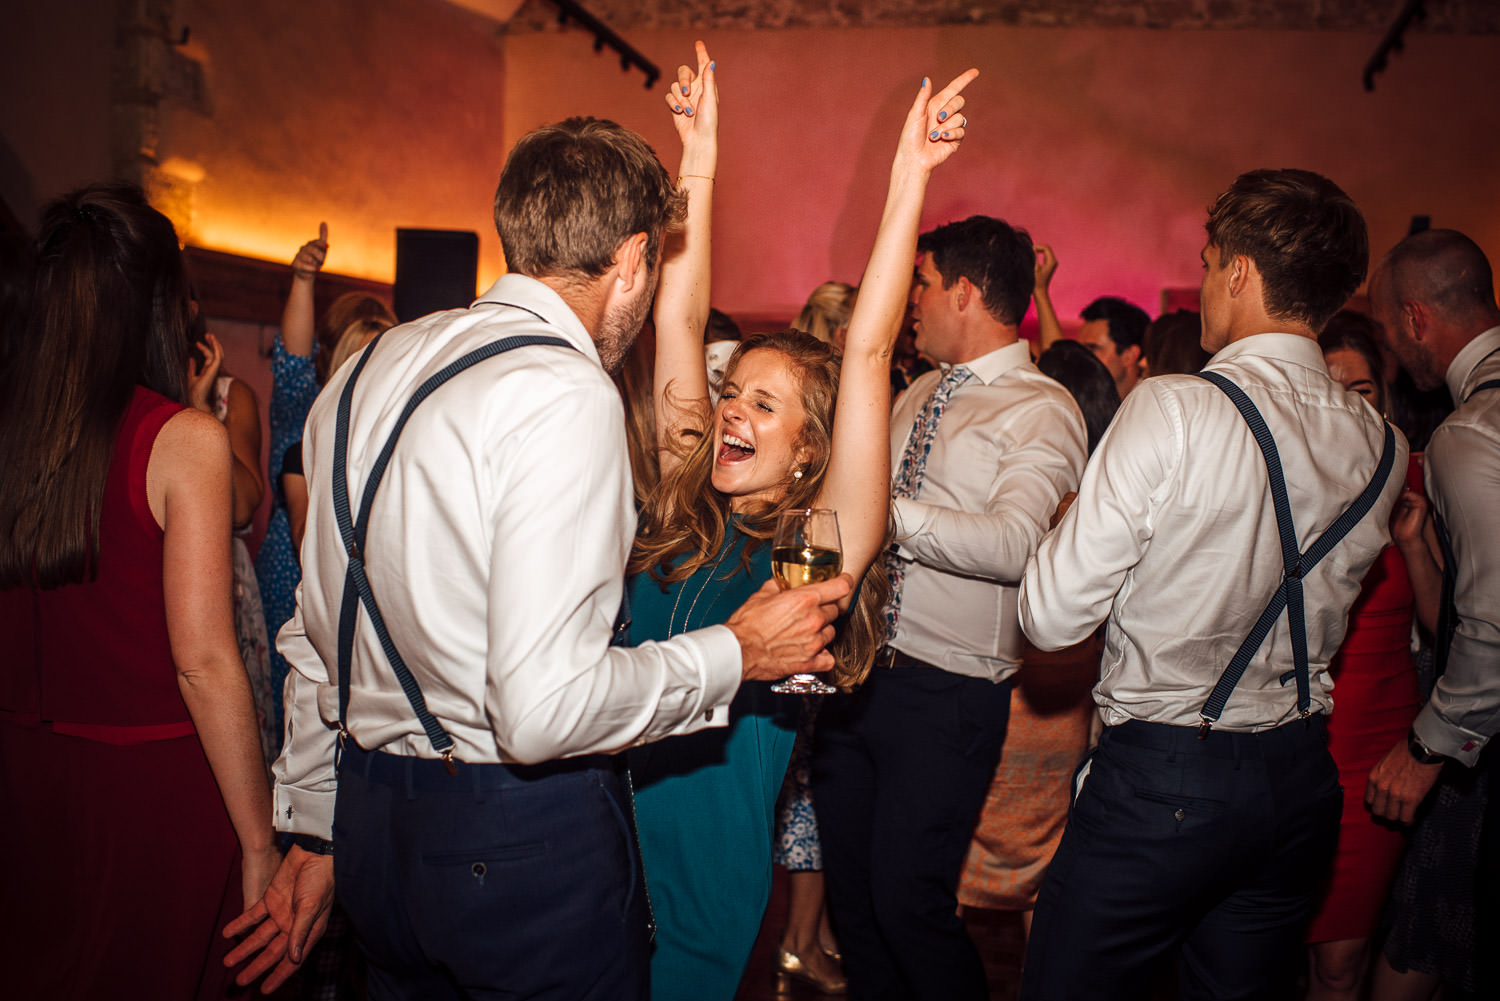 guests dancing at oxleaze barn wedding